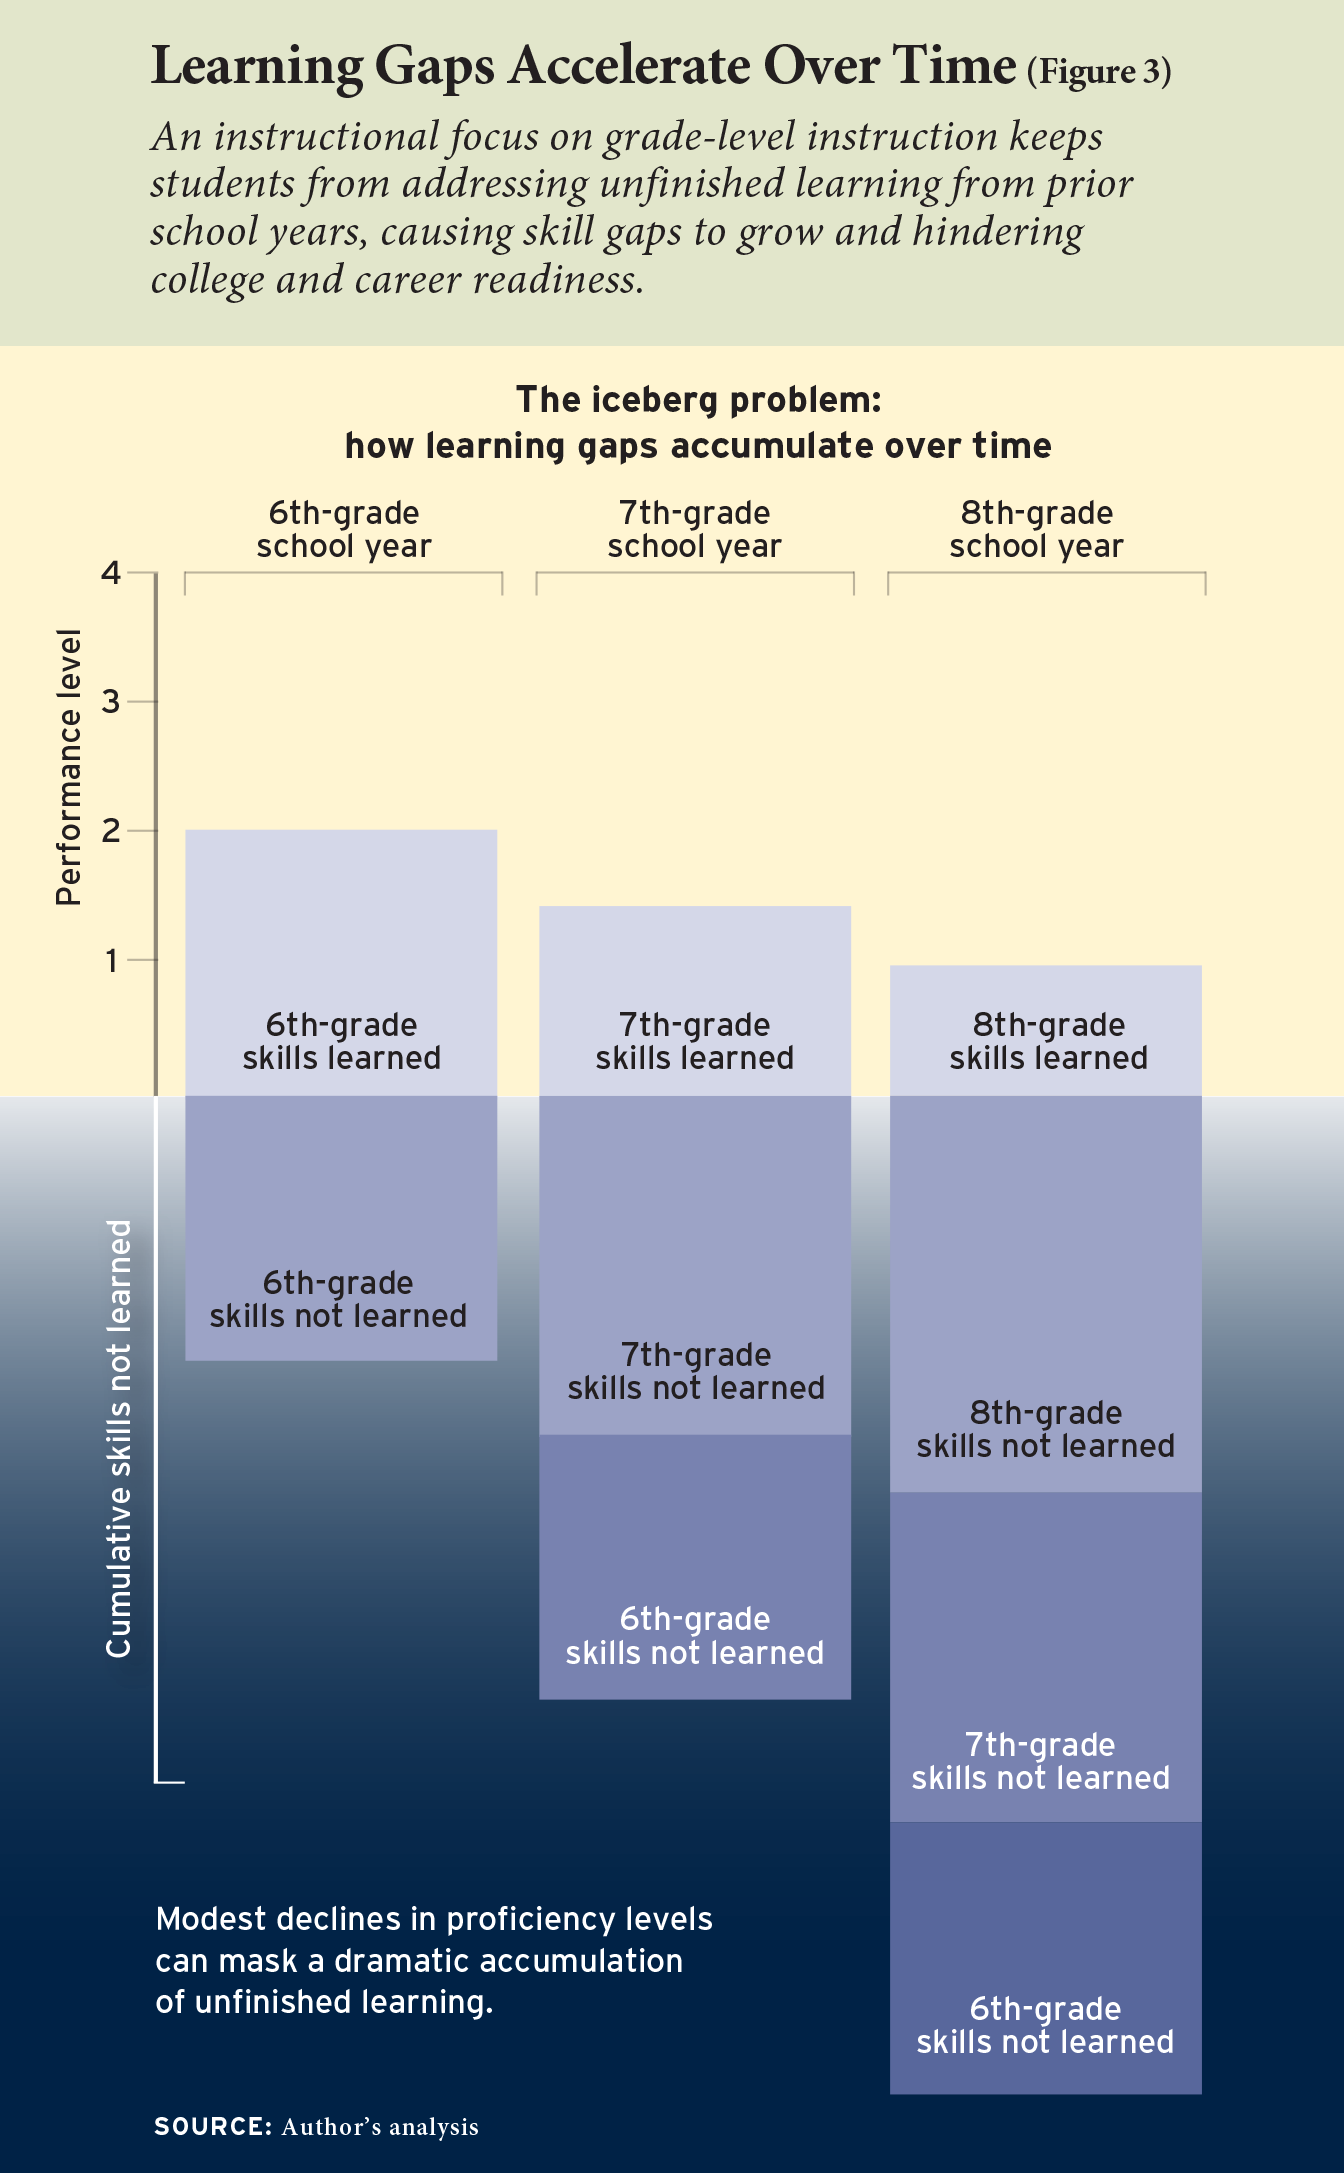 Learning Gaps Accelerate Over Time (Figure 3)